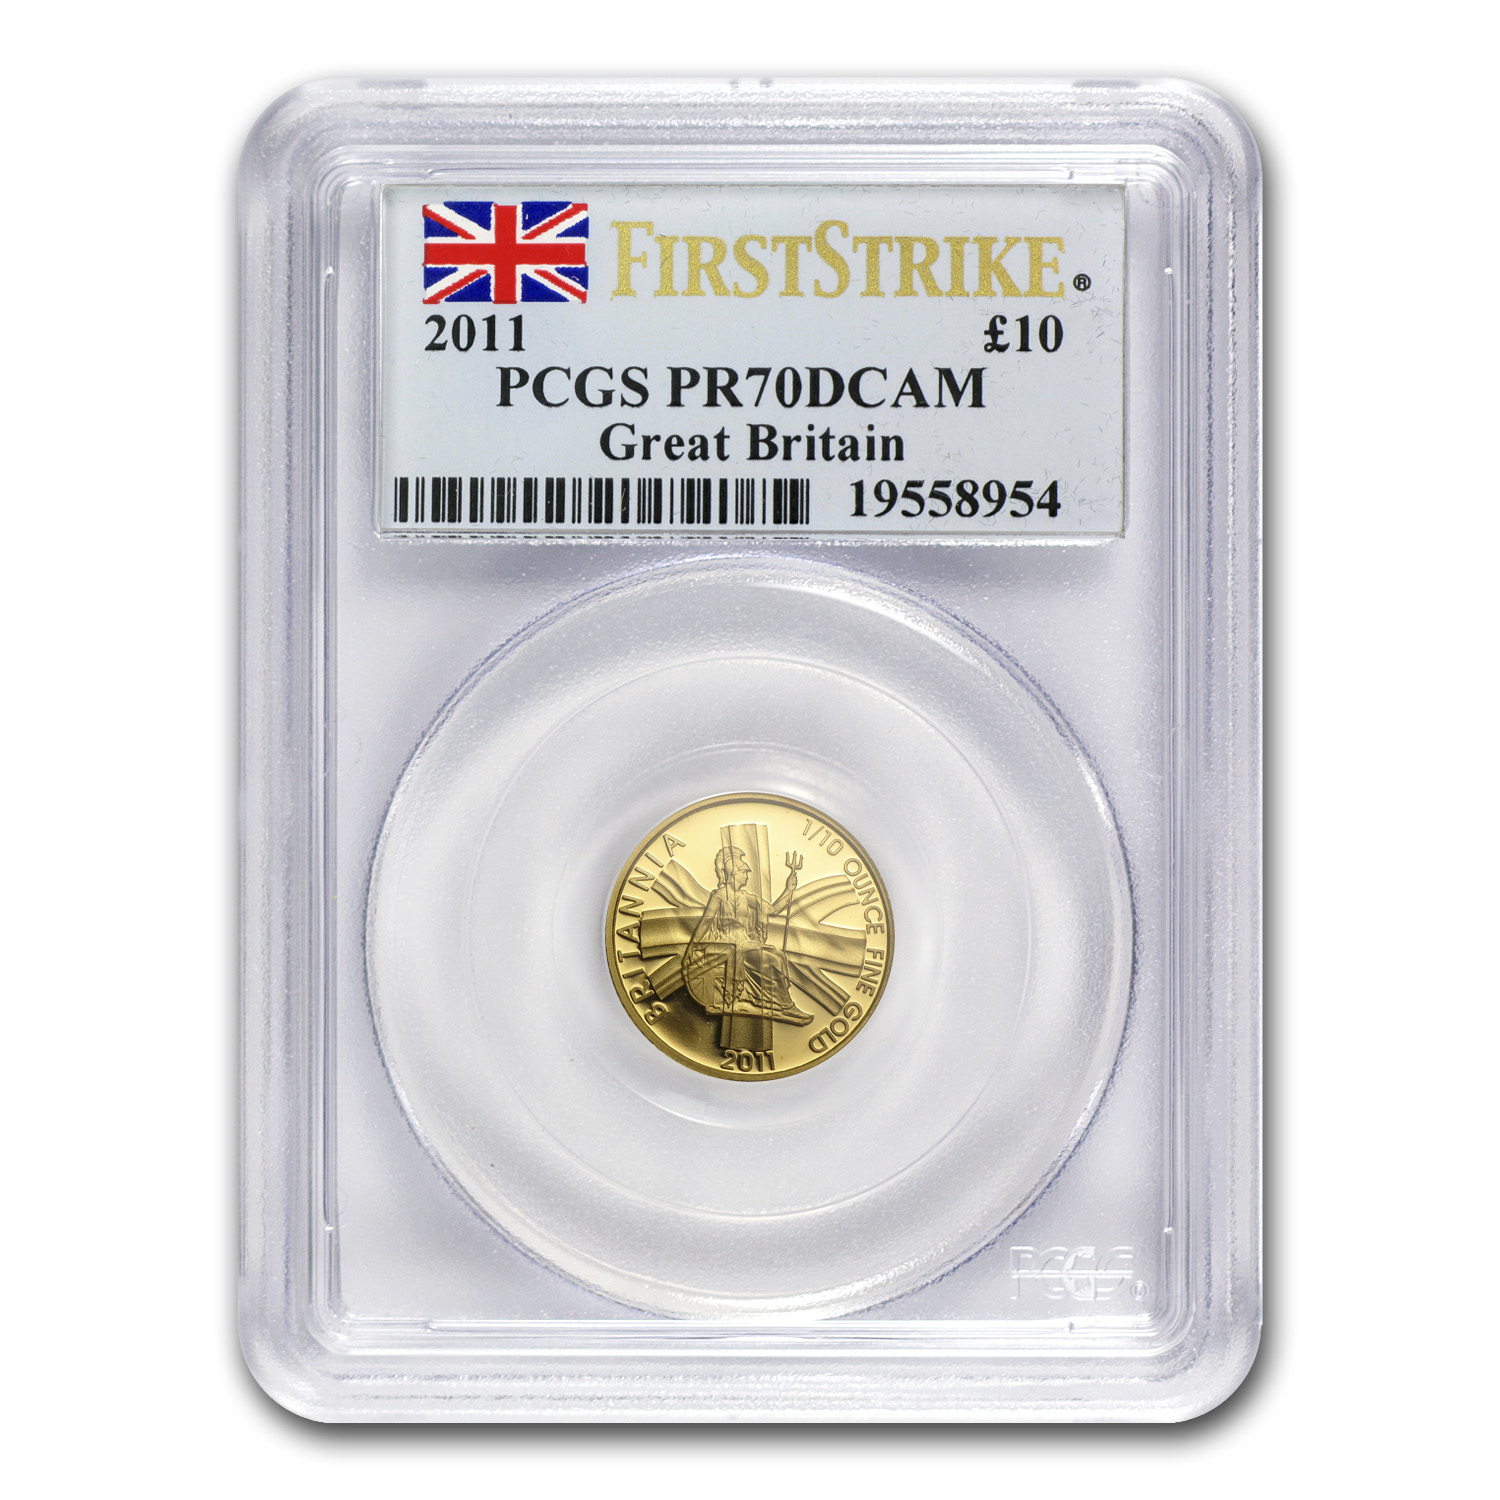 2011 Great Britain 1/10 oz Proof Gold Britannia PR-70 PCGS (FS)